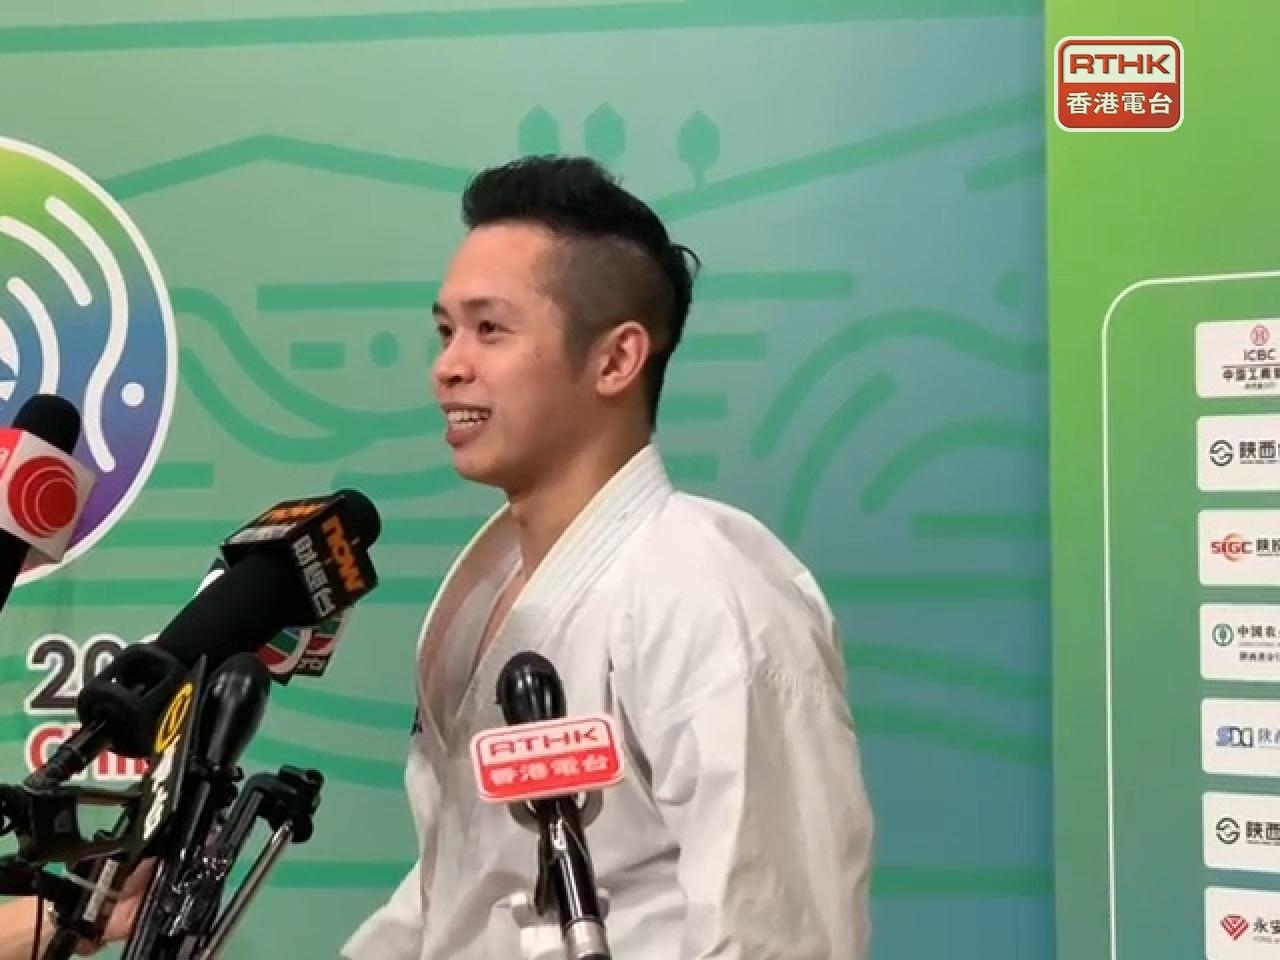 Lau Chi-ming takes bronze medal in karate